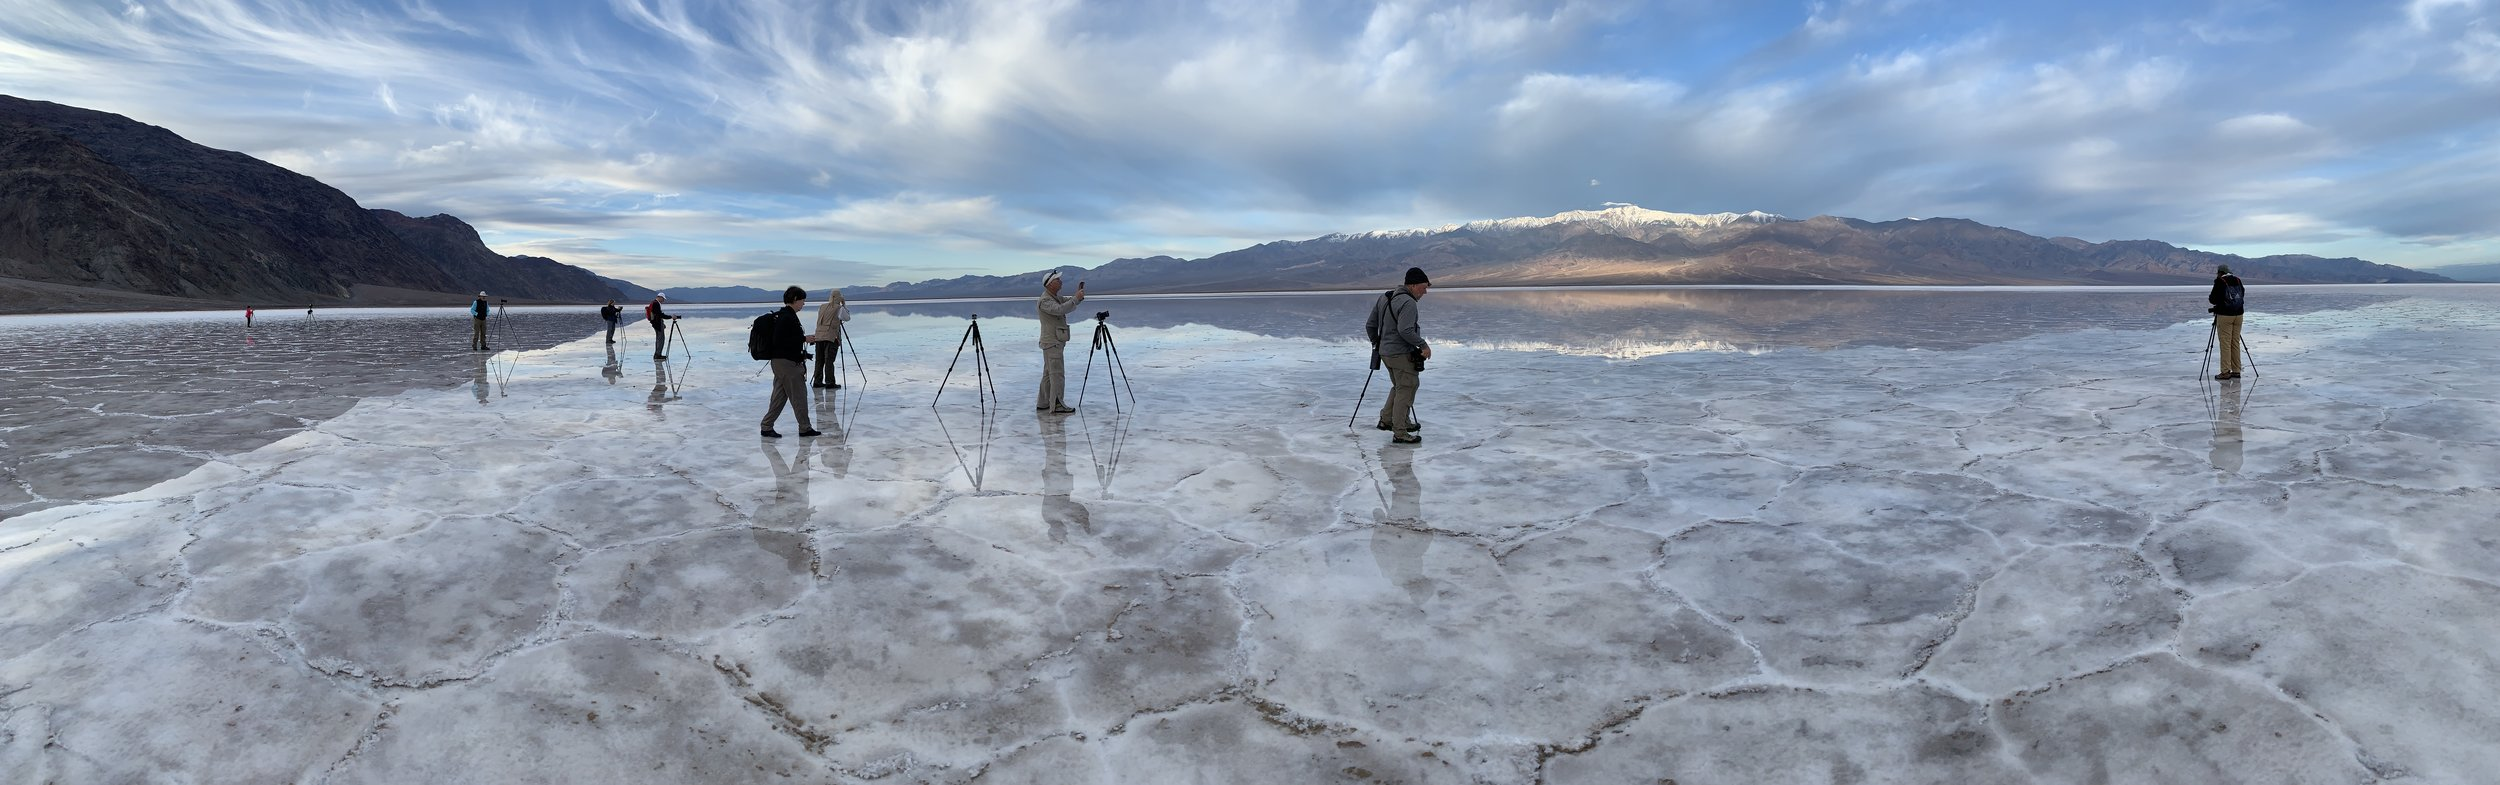 Our workshop group at Badwater